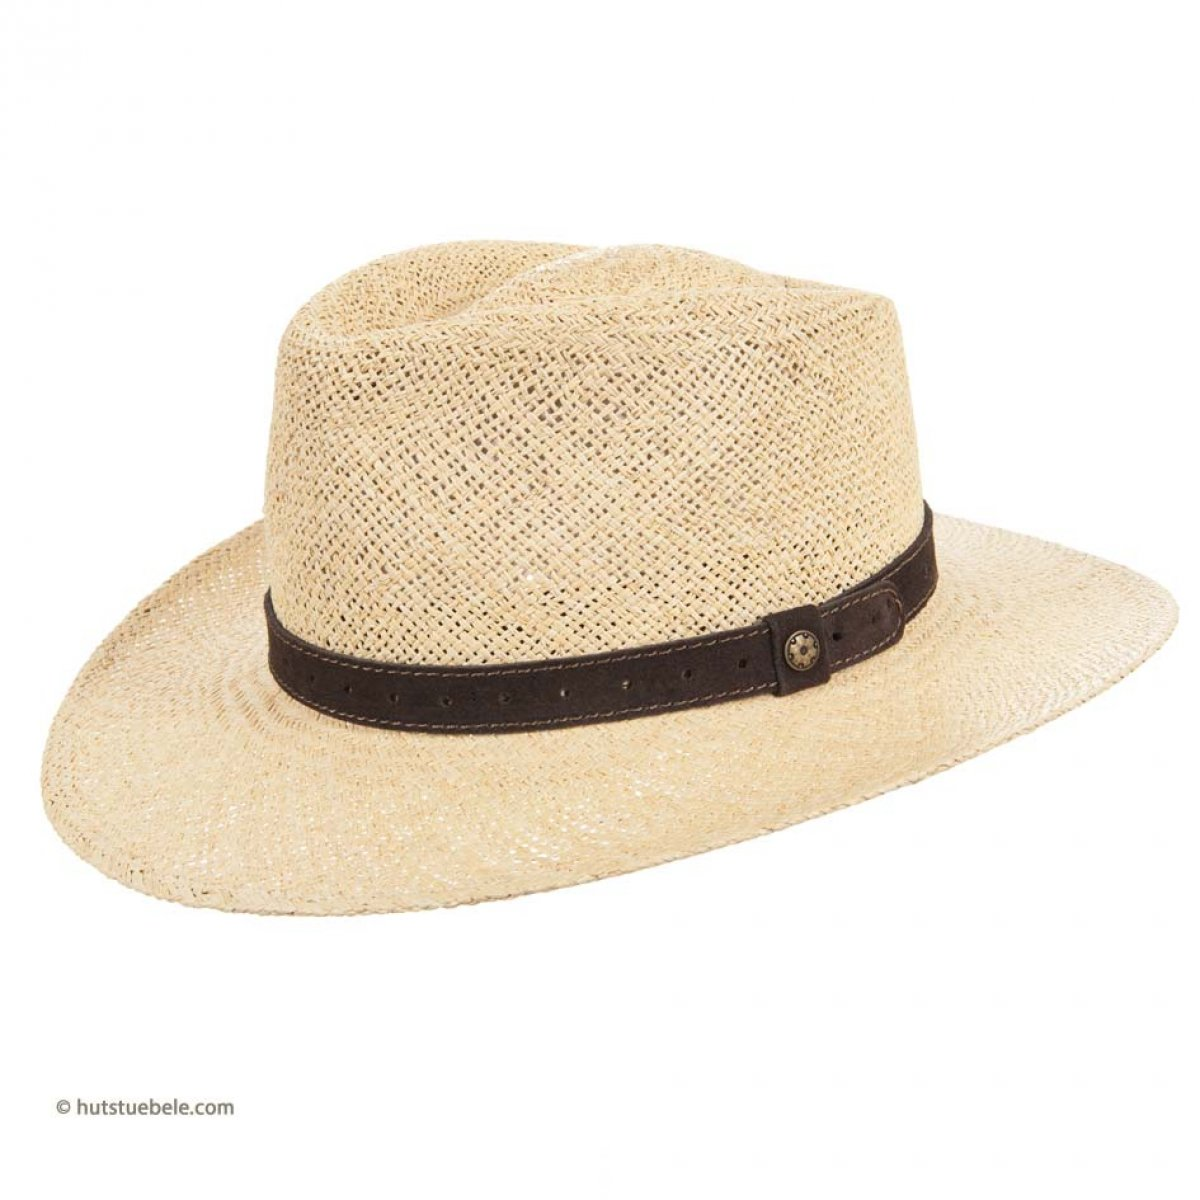 e390d0e50ec059 exclusiv hat for man in natural straw with decoration in leather